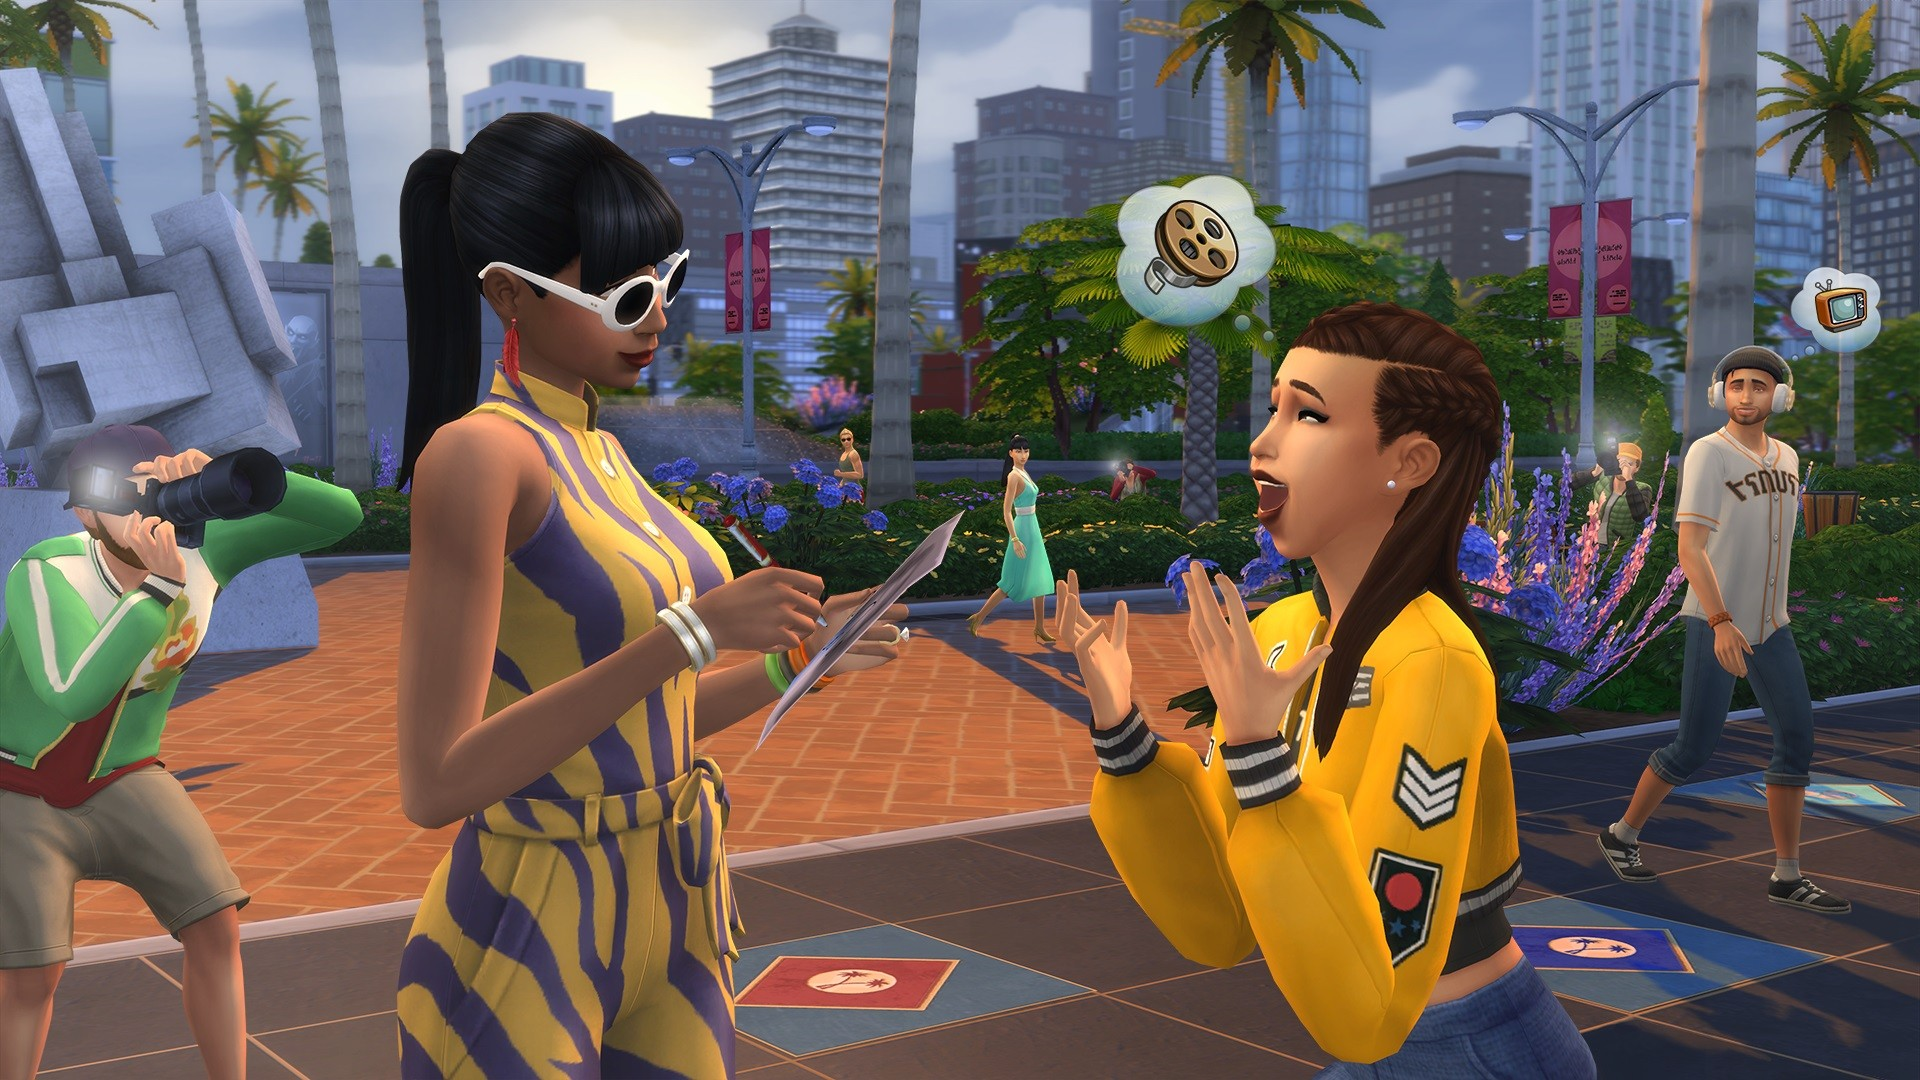 The Sims 4: Get Famous | The Sims Wiki | FANDOM powered by Wikia